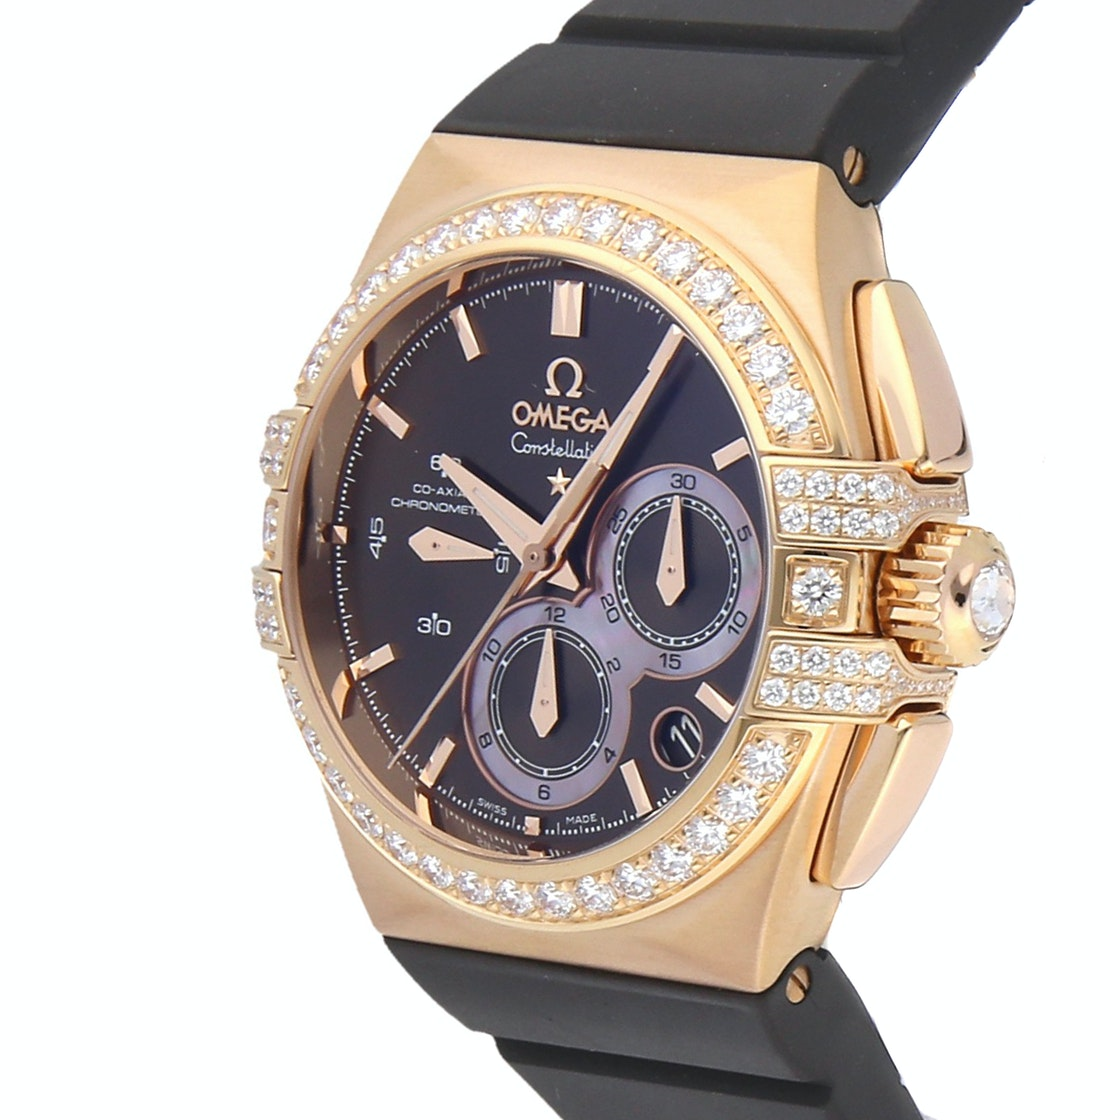 Omega Constellation Double Eagle Chronograph 121.57.35.50.13.001